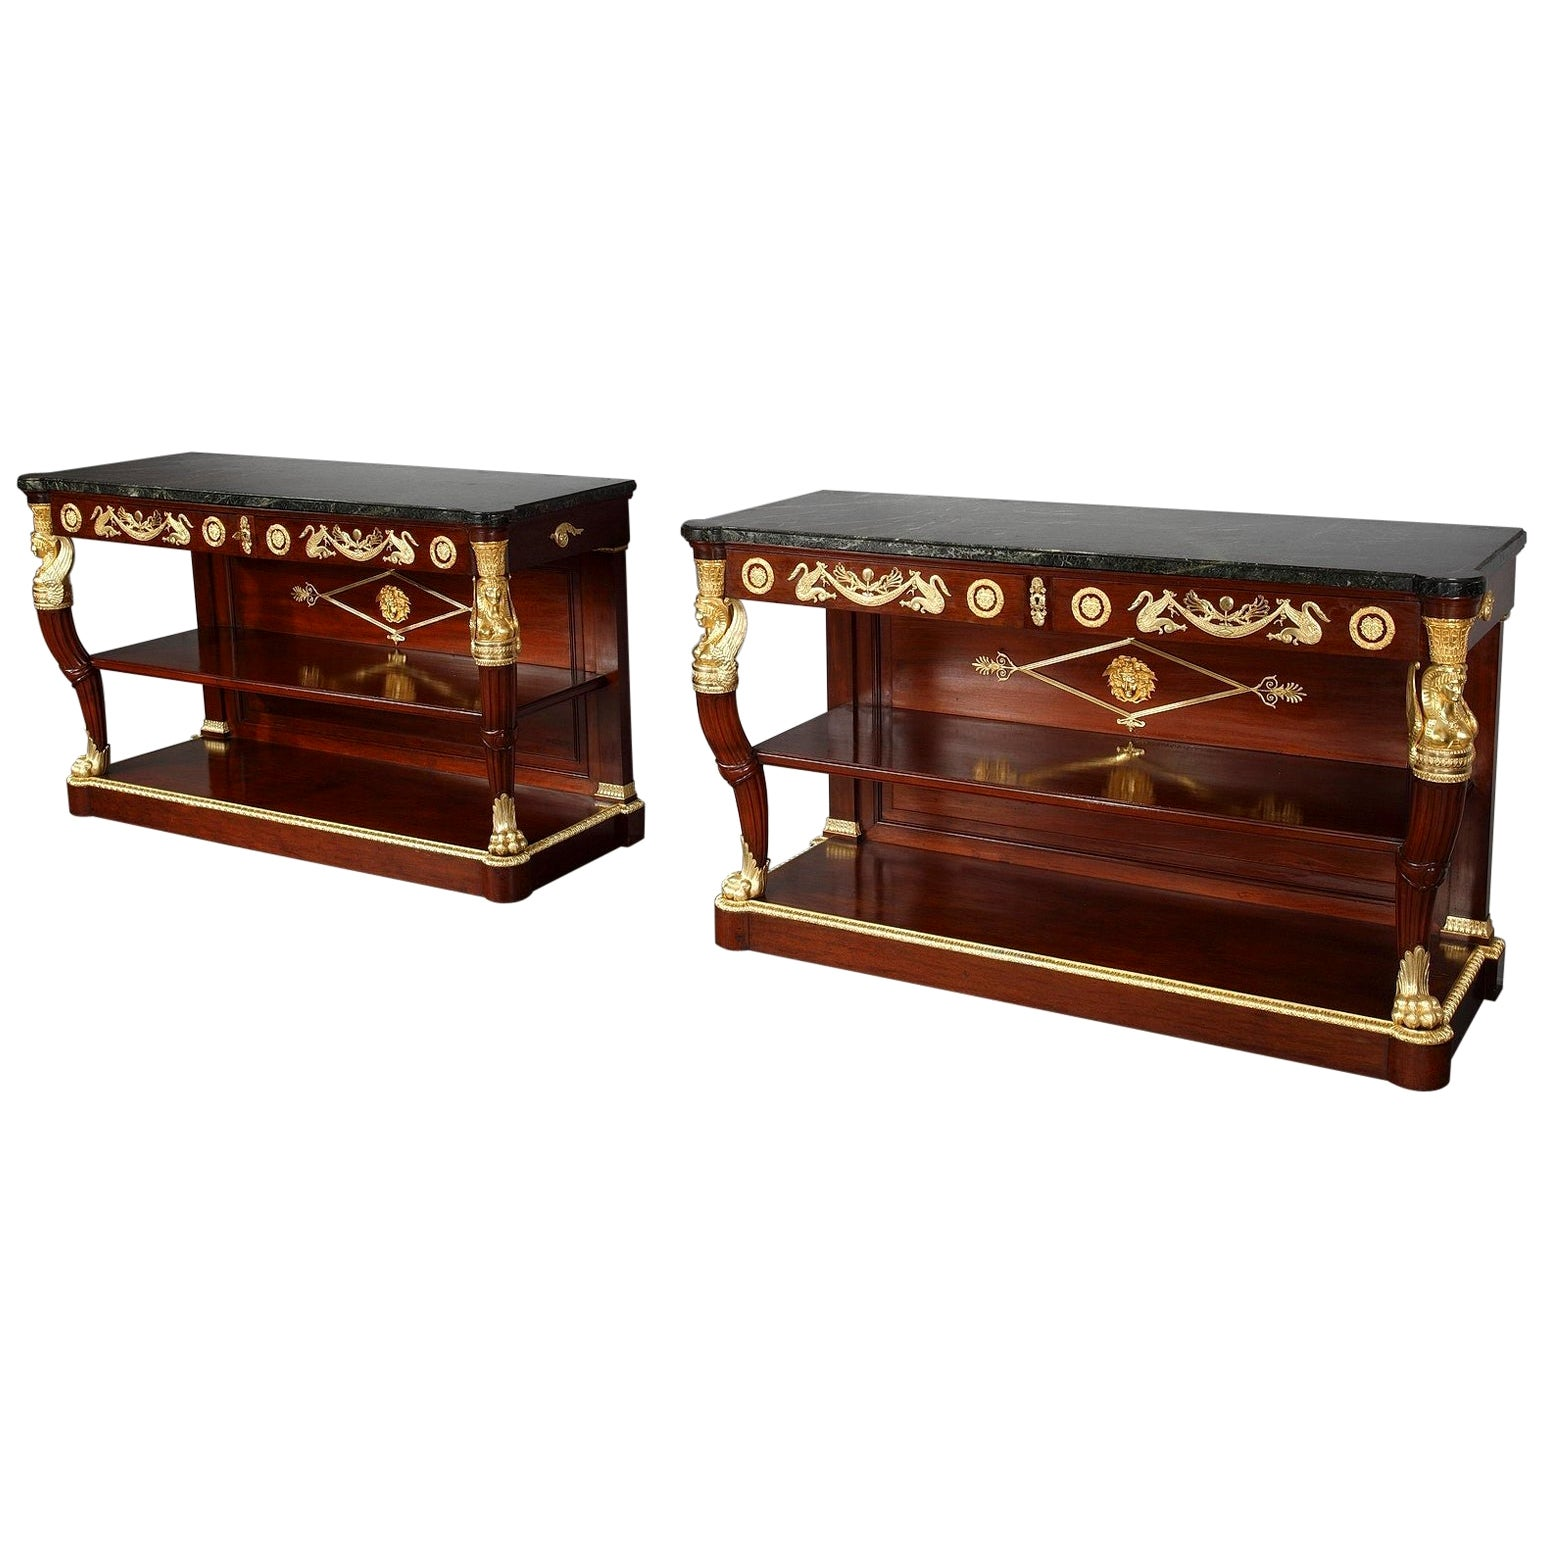 Important Pair of Marble-Topped Console Tables in Return from Egypt Style